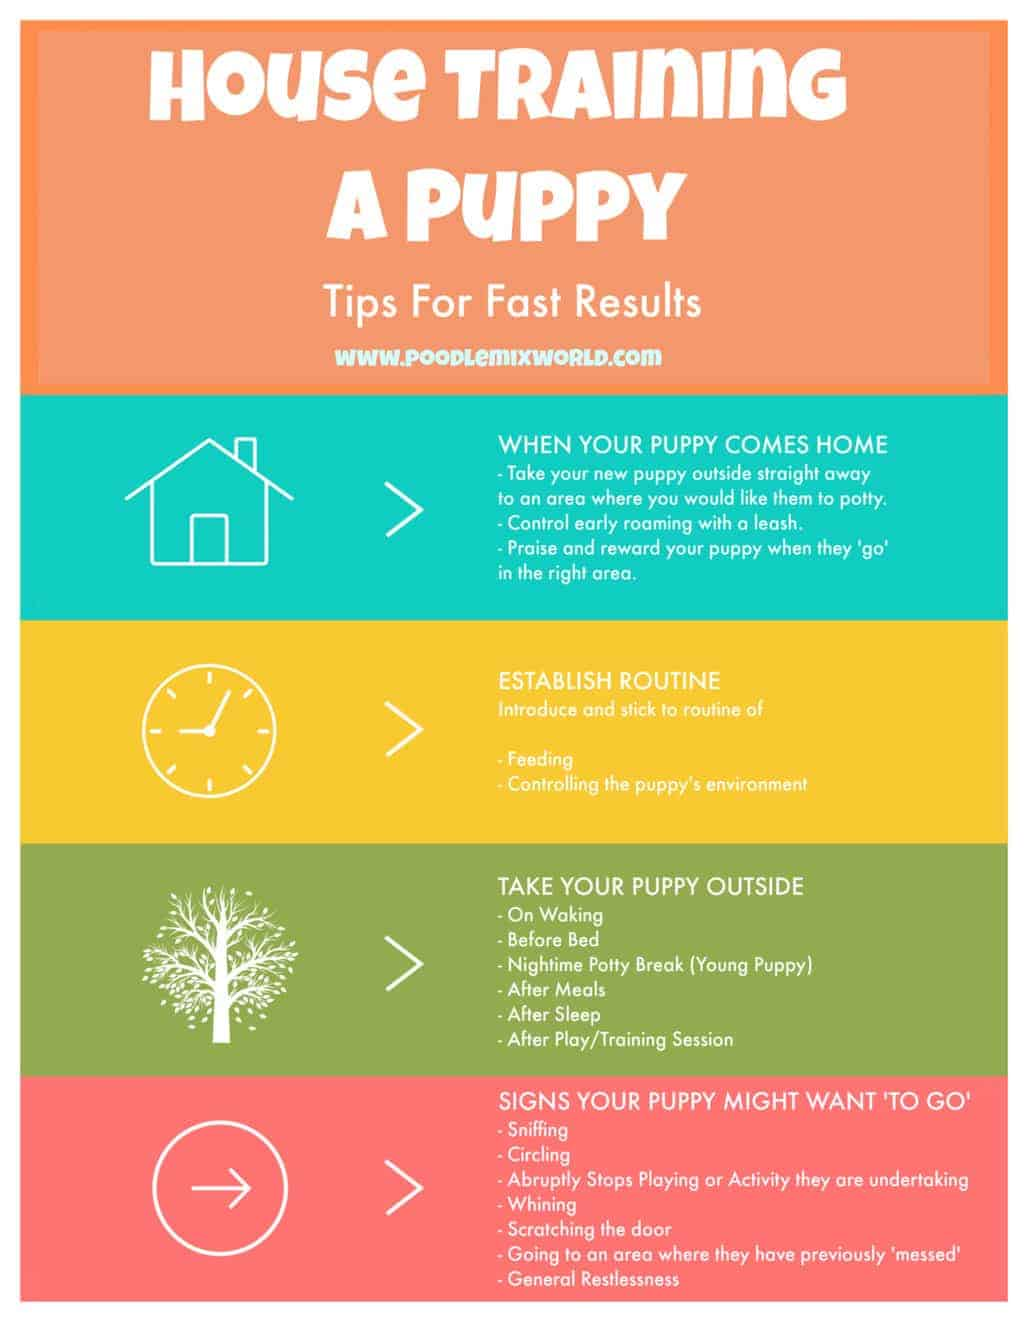 Infographic showing tips on how to house train a dog quickly